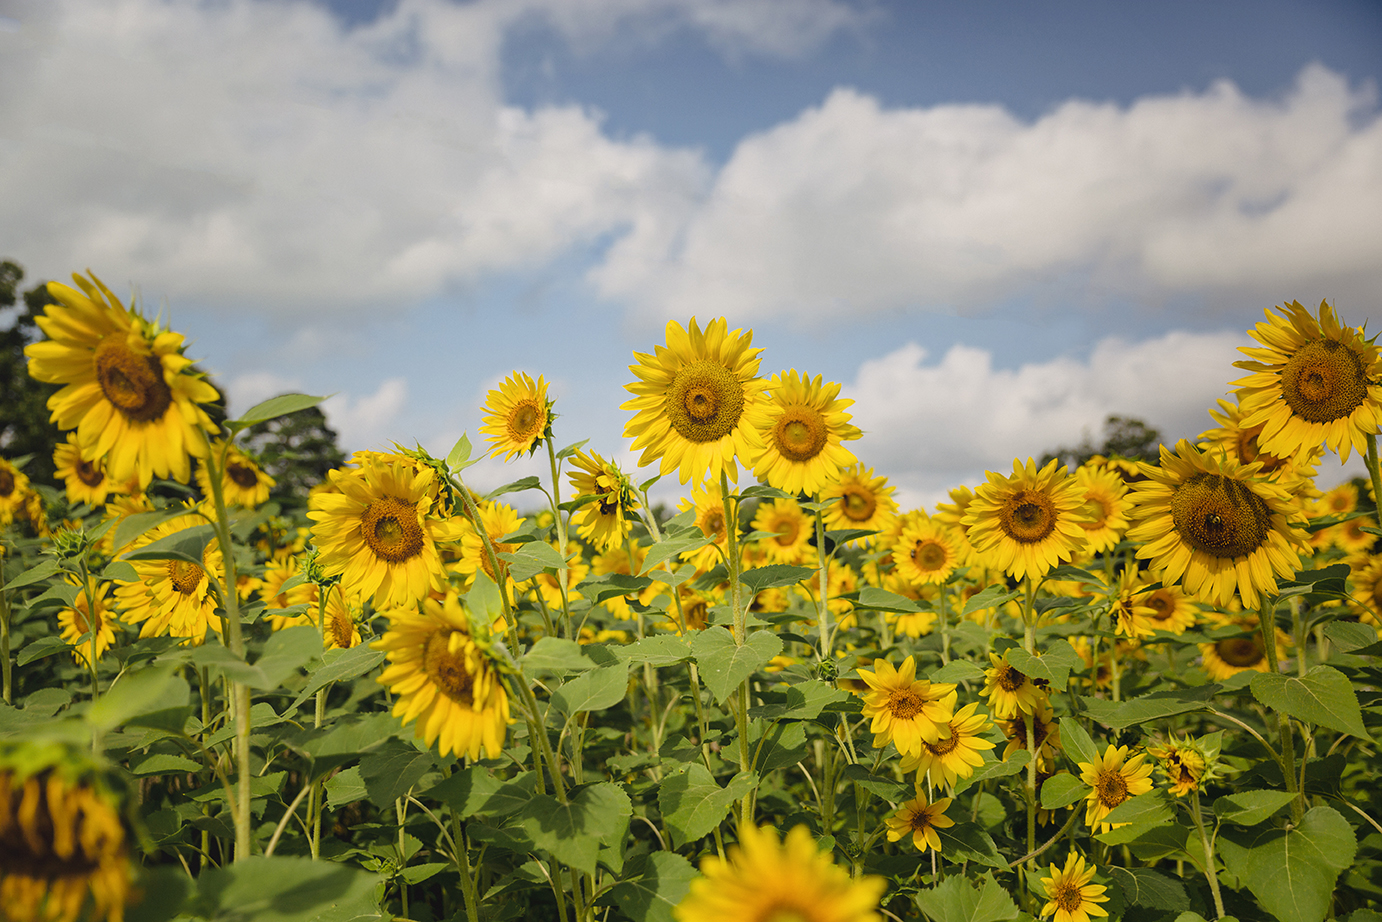 17 South, field of sunflowers